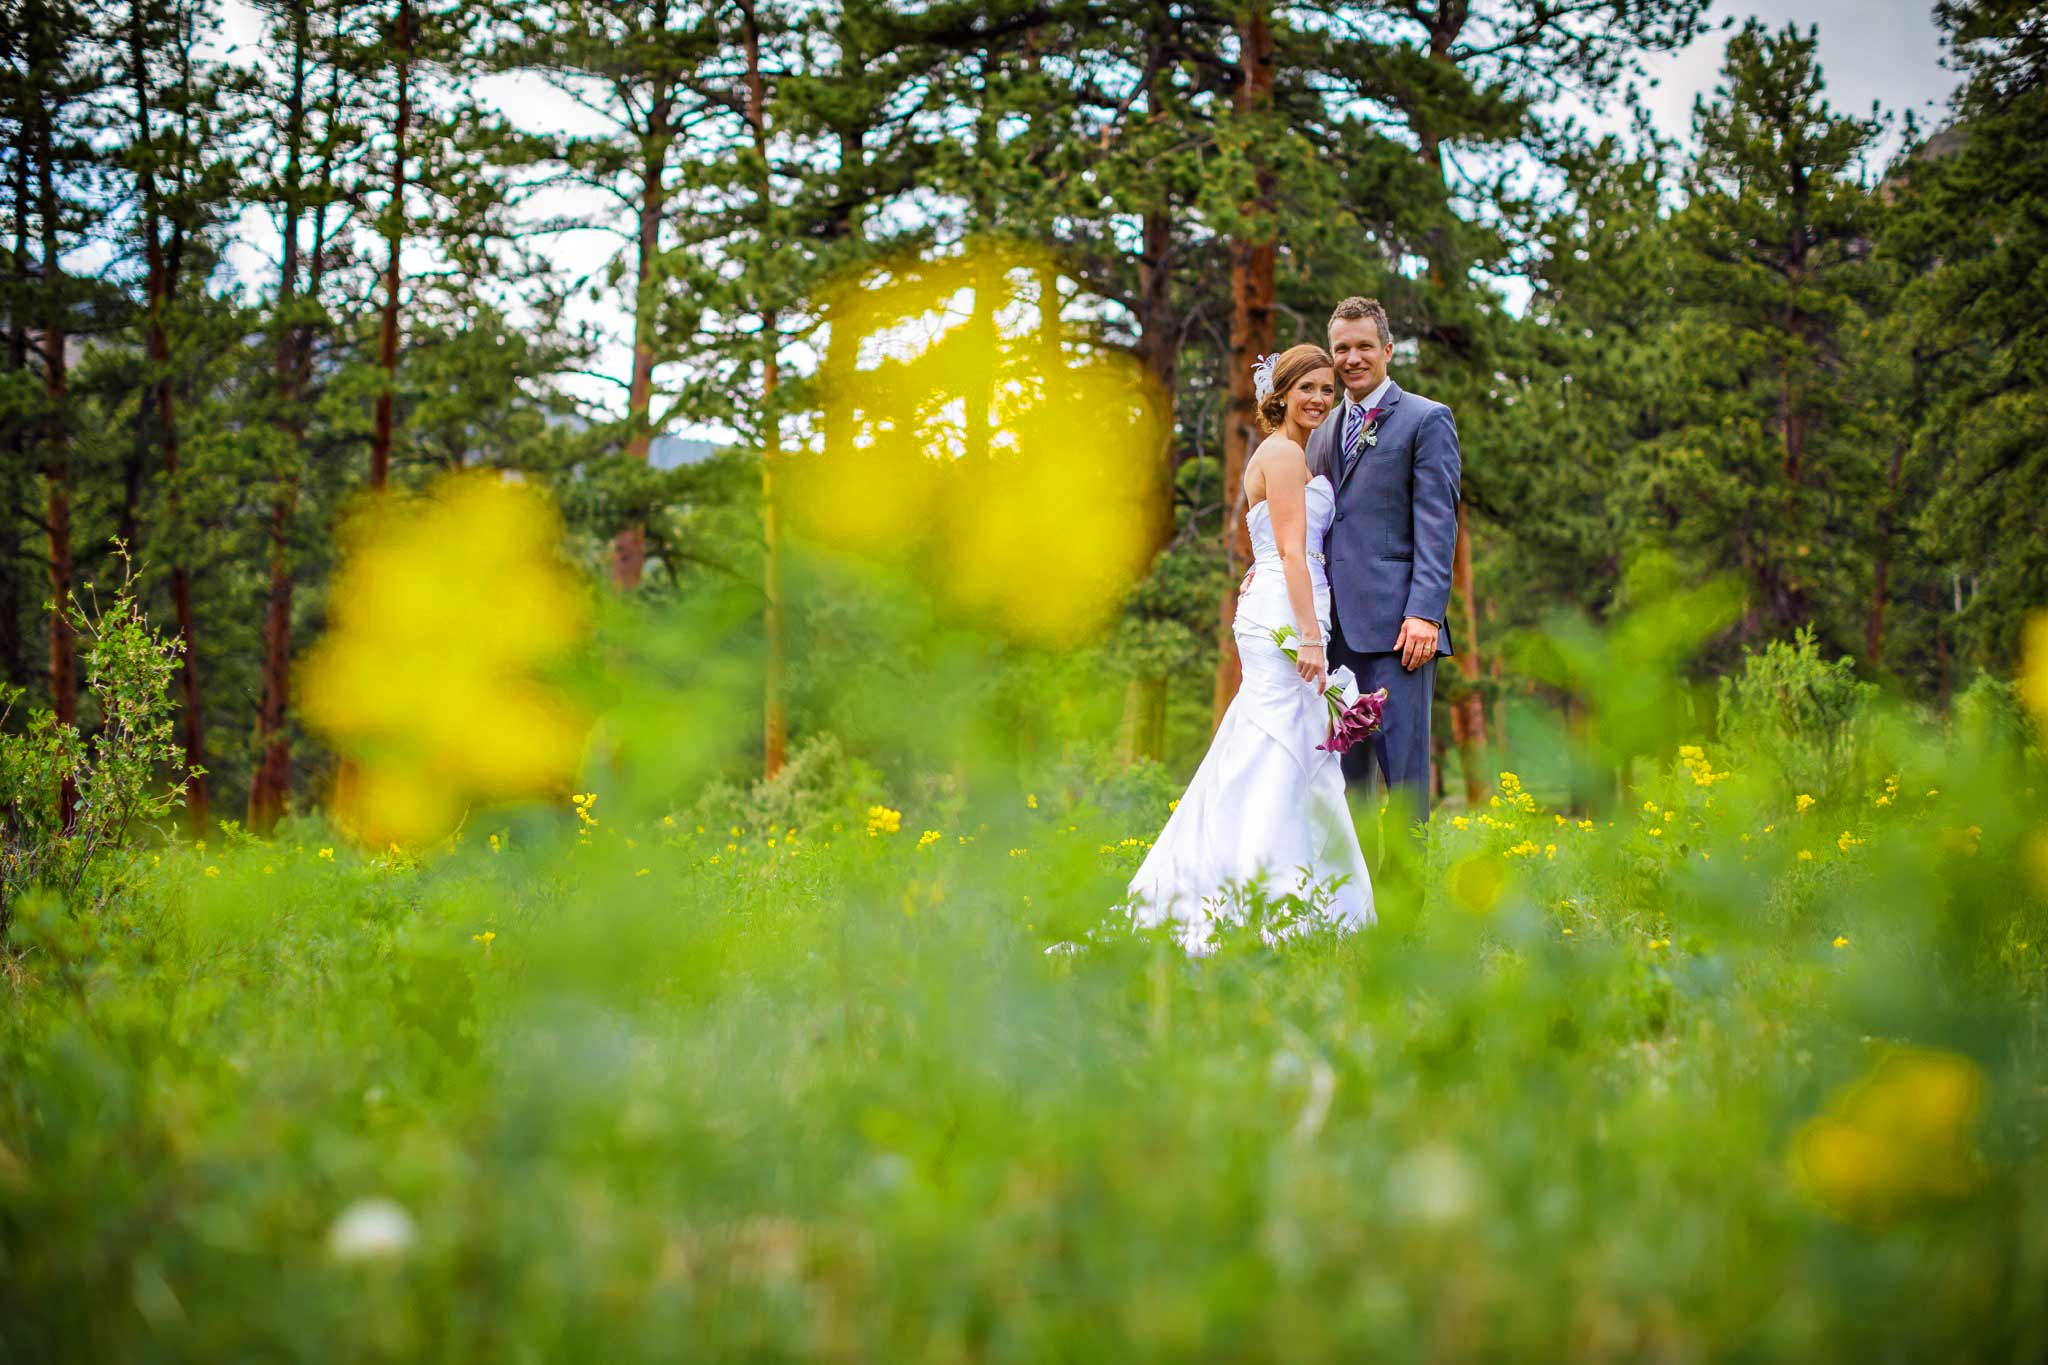 Wedding photo in Estes Park, CO